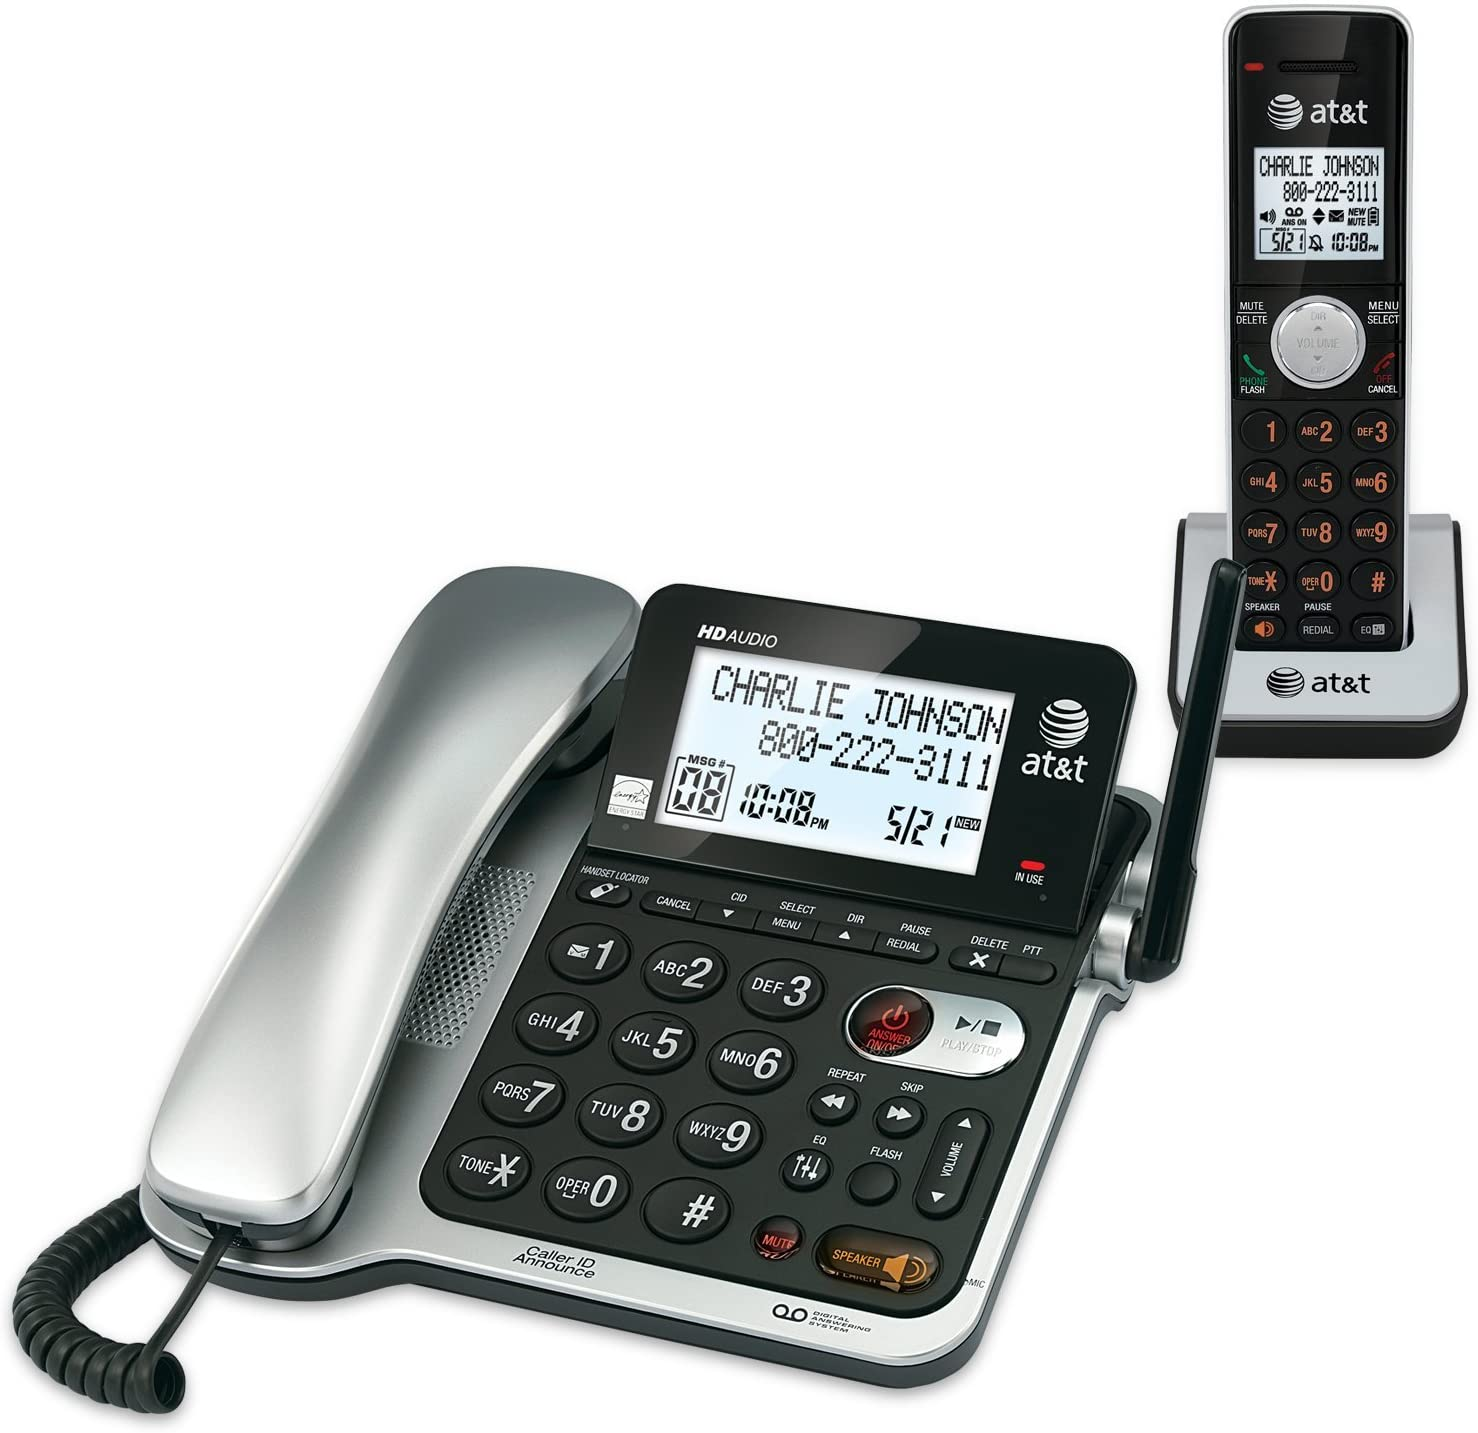 Digital Answering System AT/&T CL84302 Corded//Cordless Phone System W